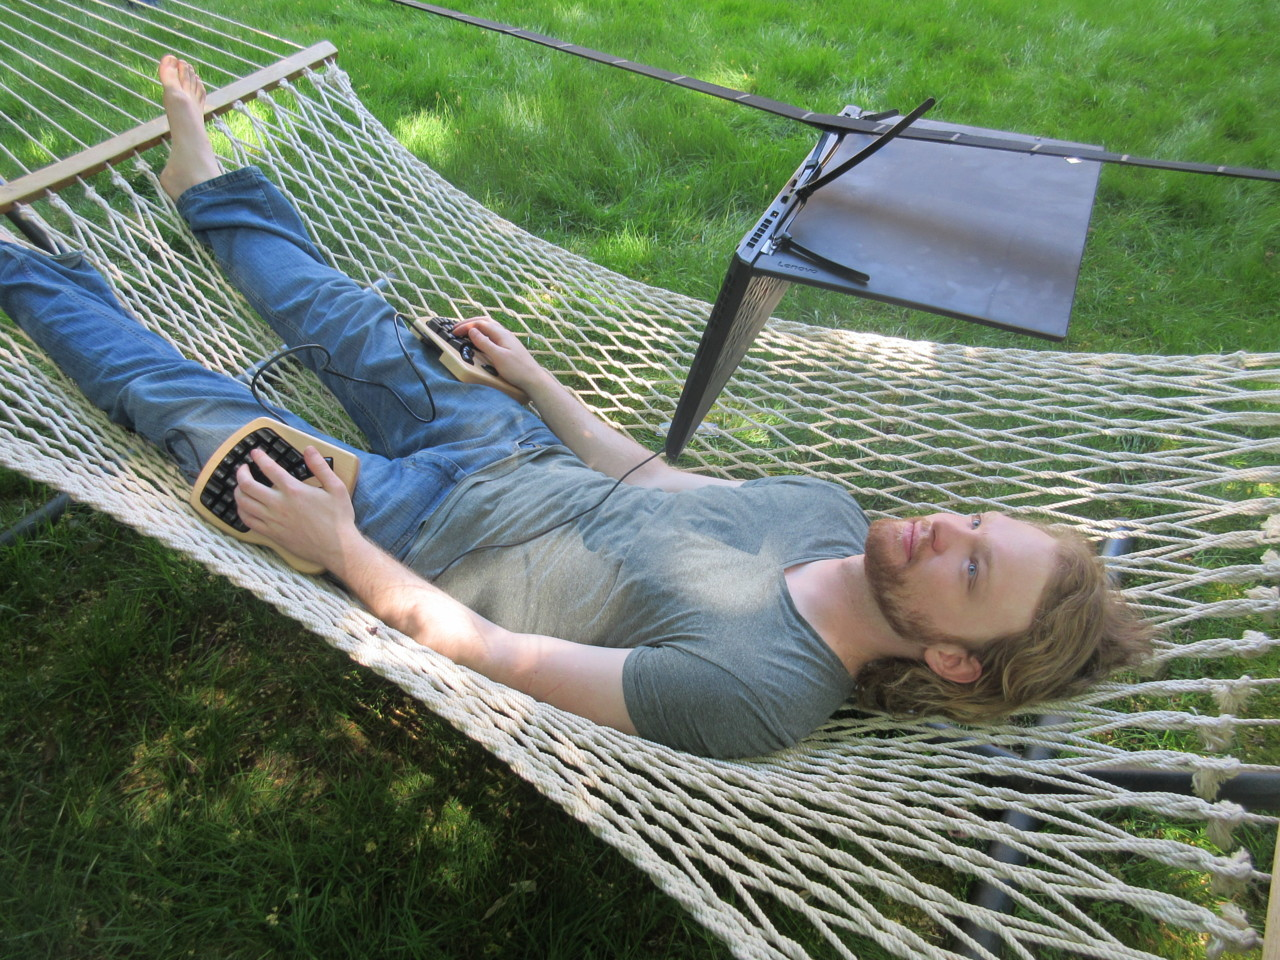 Using a computer ergonomically in a hammock, via external split keyboard and computer suspended above head